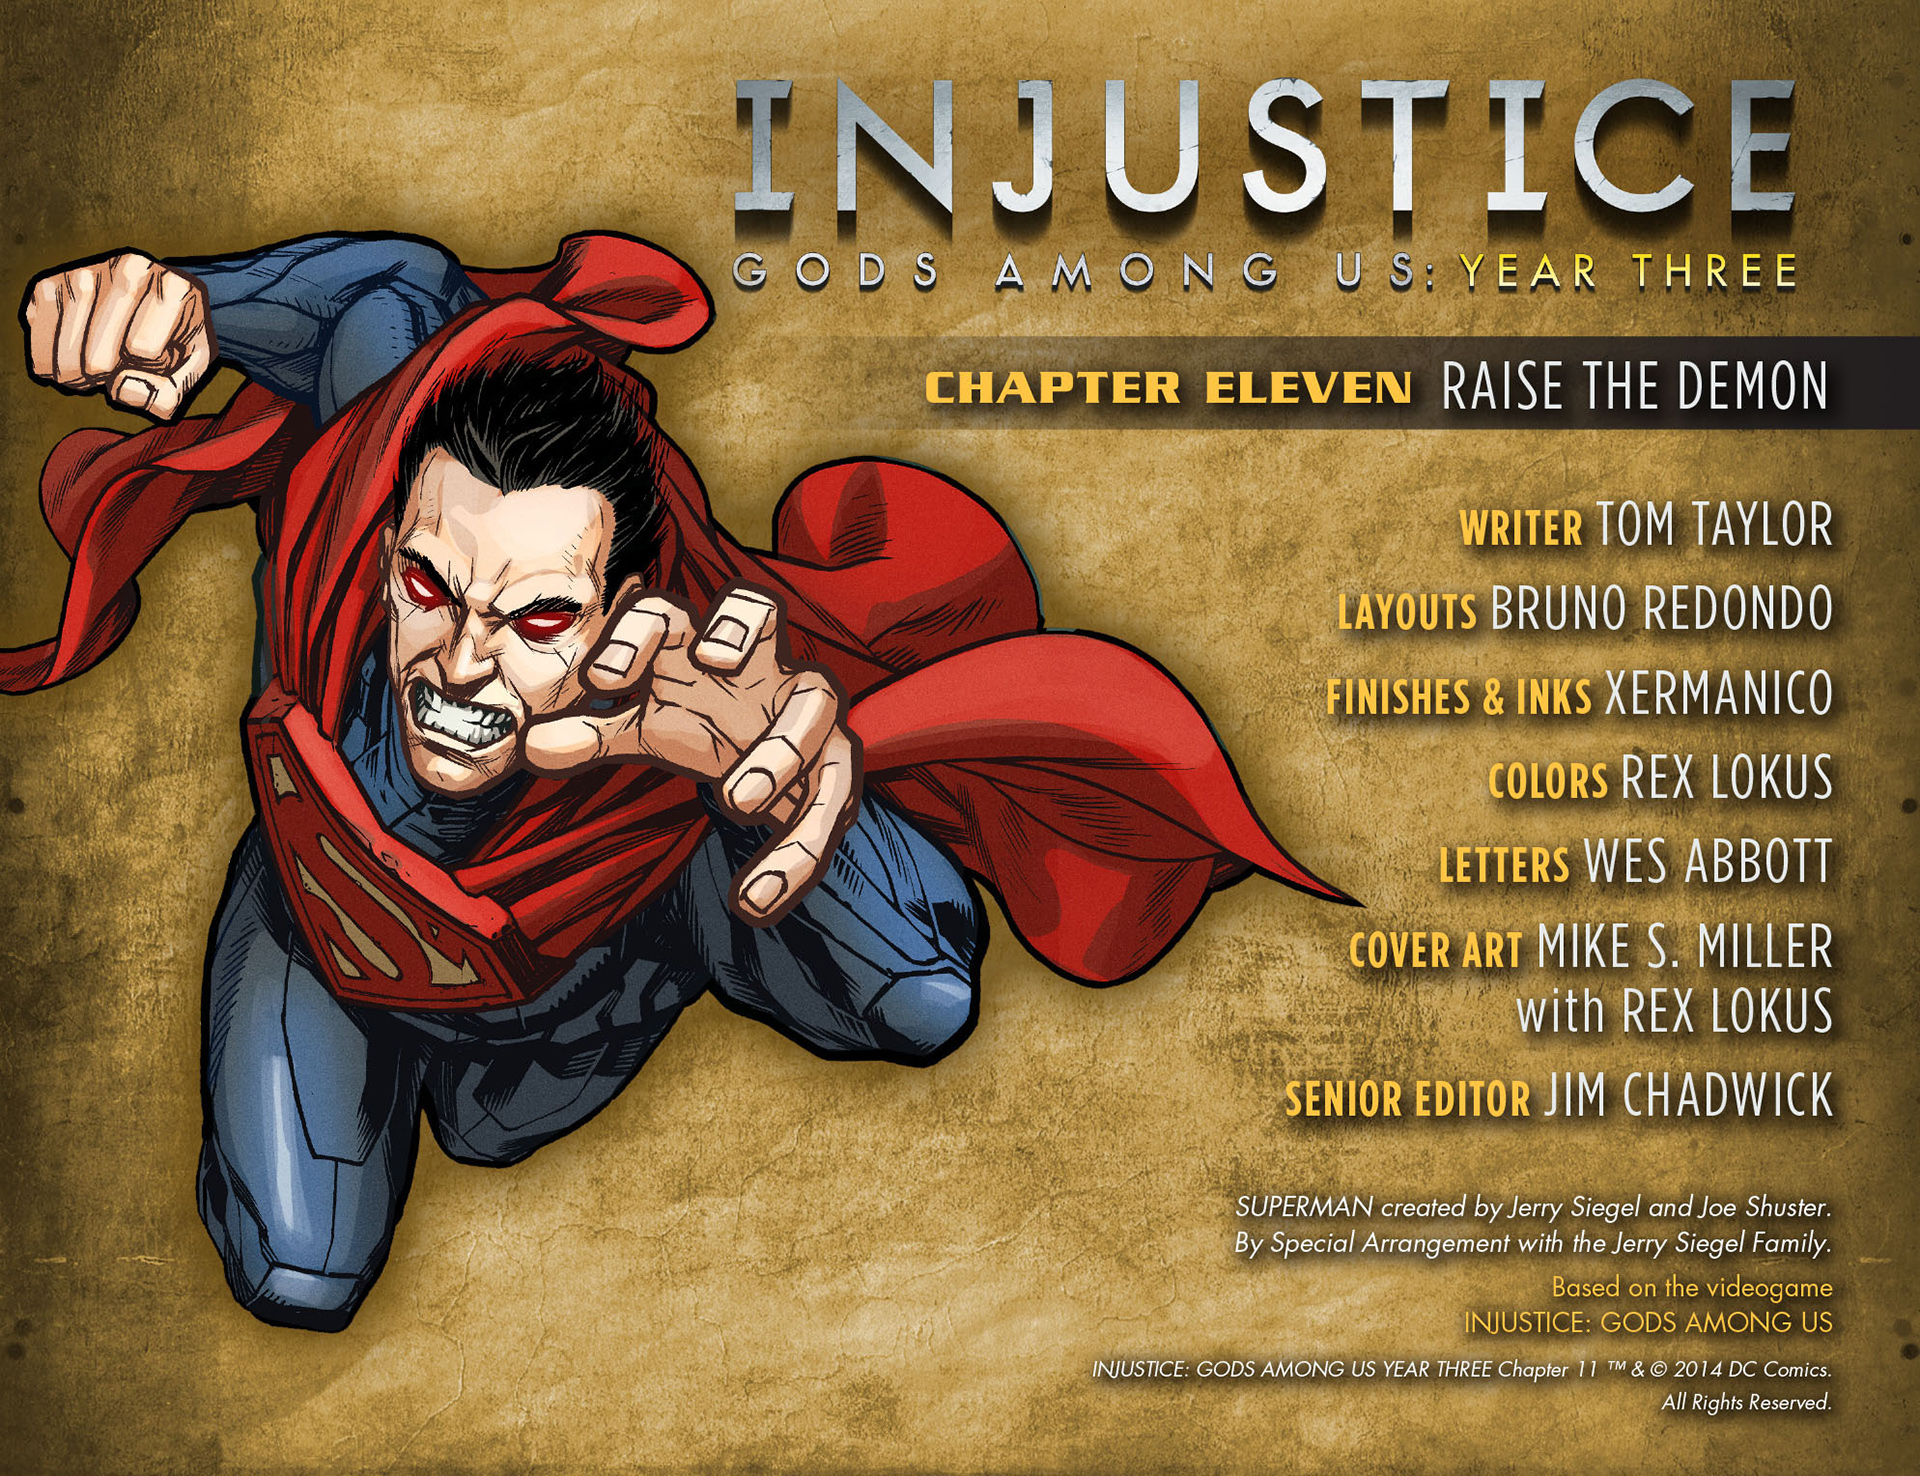 Injustice Gods Among Us Year Three Issue 11 Read Injustice Gods Among Us Year Three Issue 11 Comic Online In High Quality Read Full Comic Online For Free Read Comics